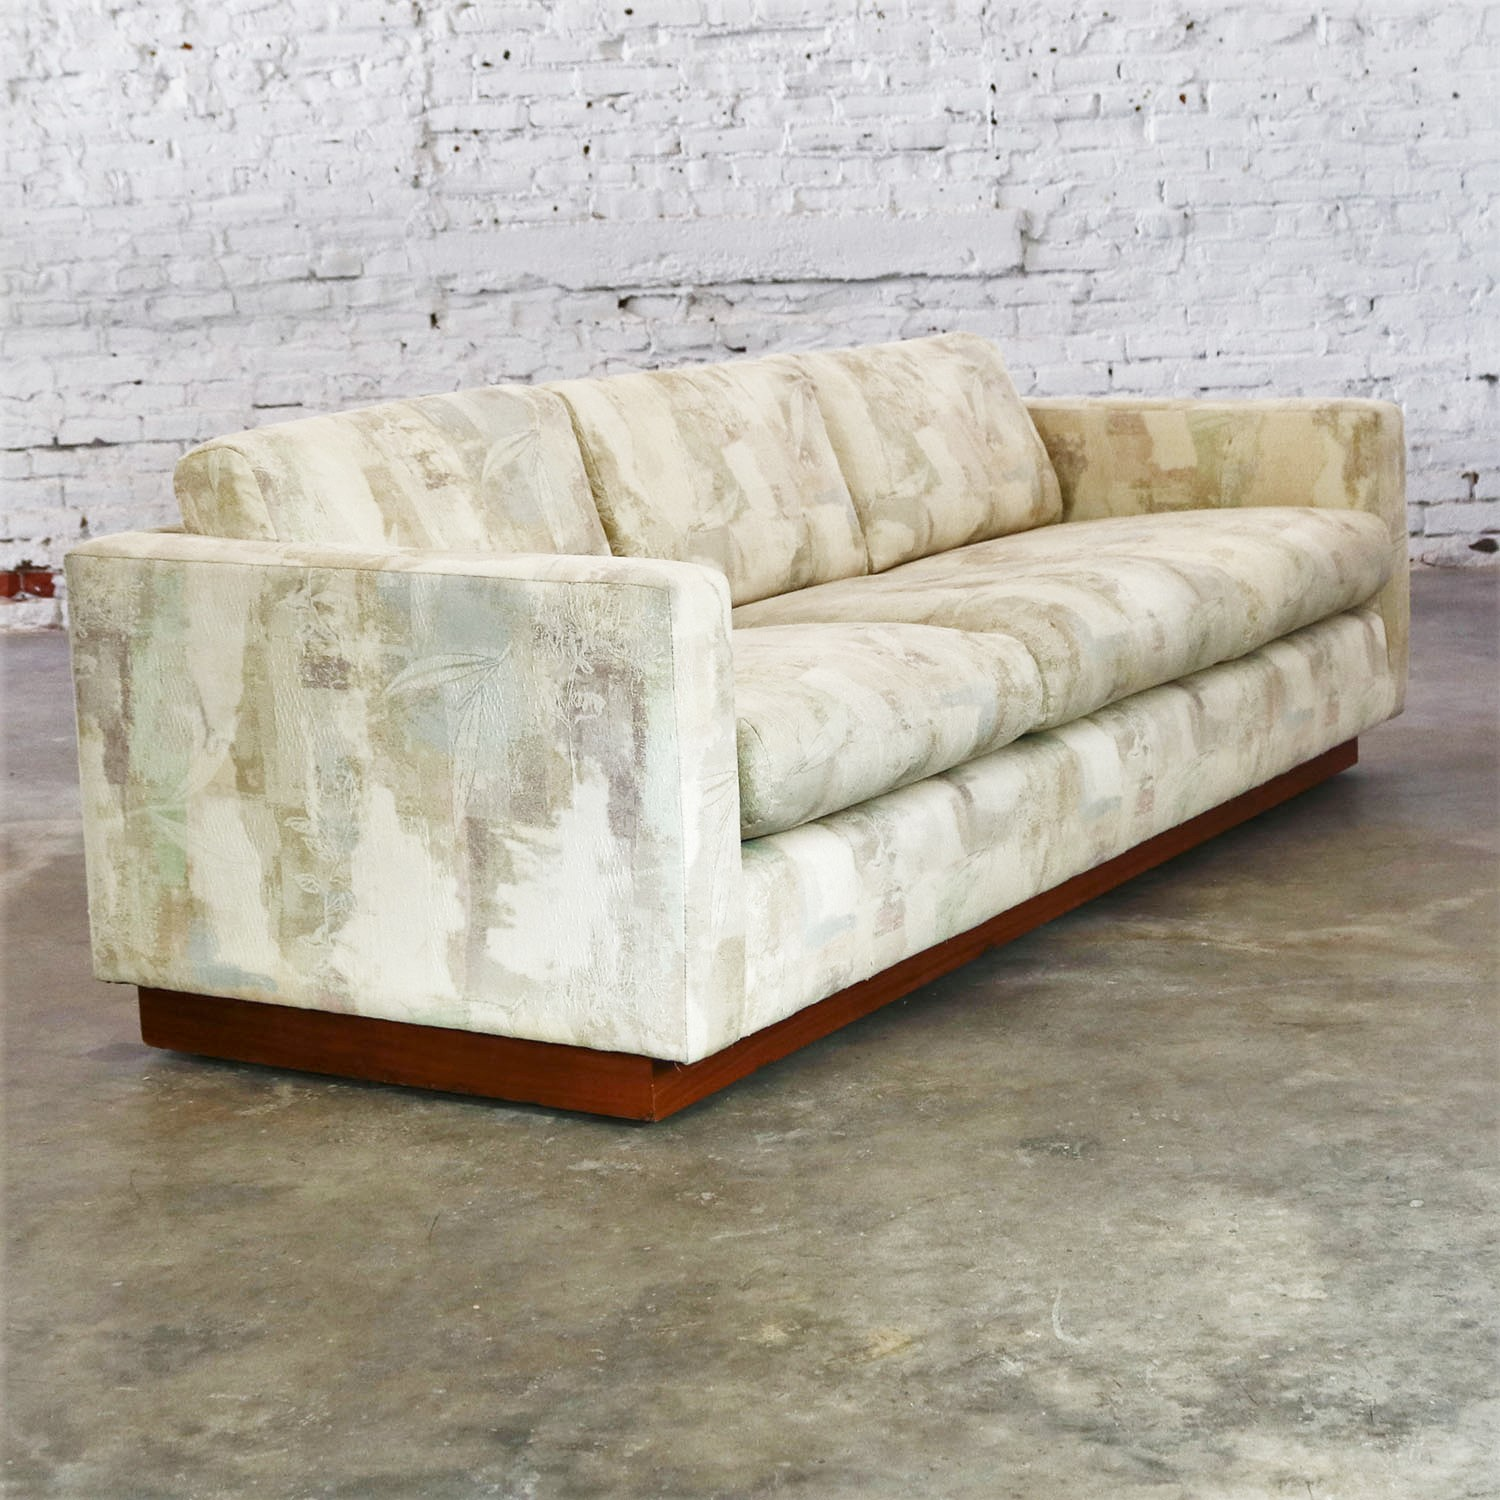 Exceptional Floating Tuxedo Style Sofa In The Manner Of Milo Baughman